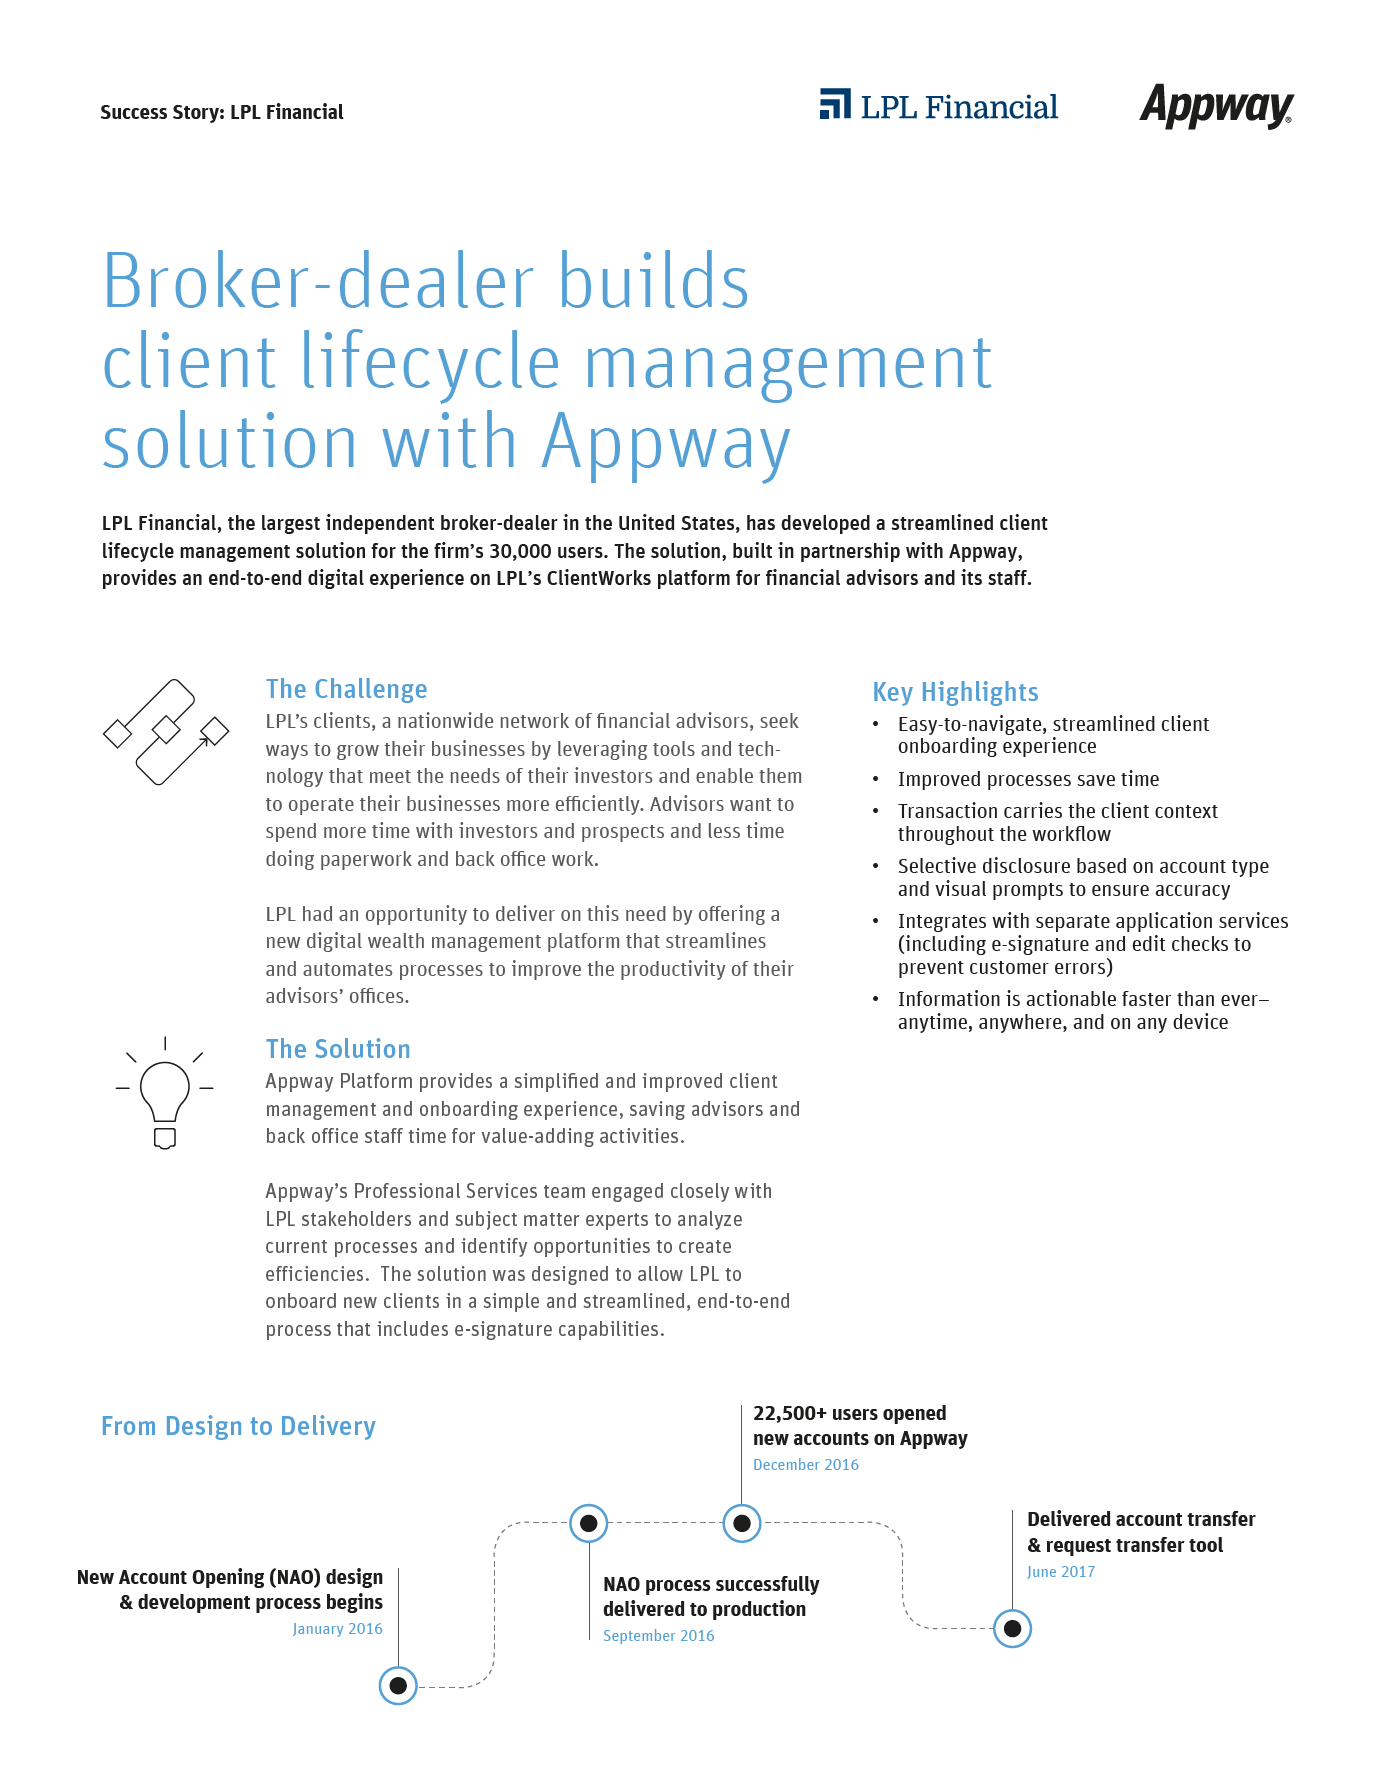 Appway case study: LPL Financial - The Wealth Mosaic